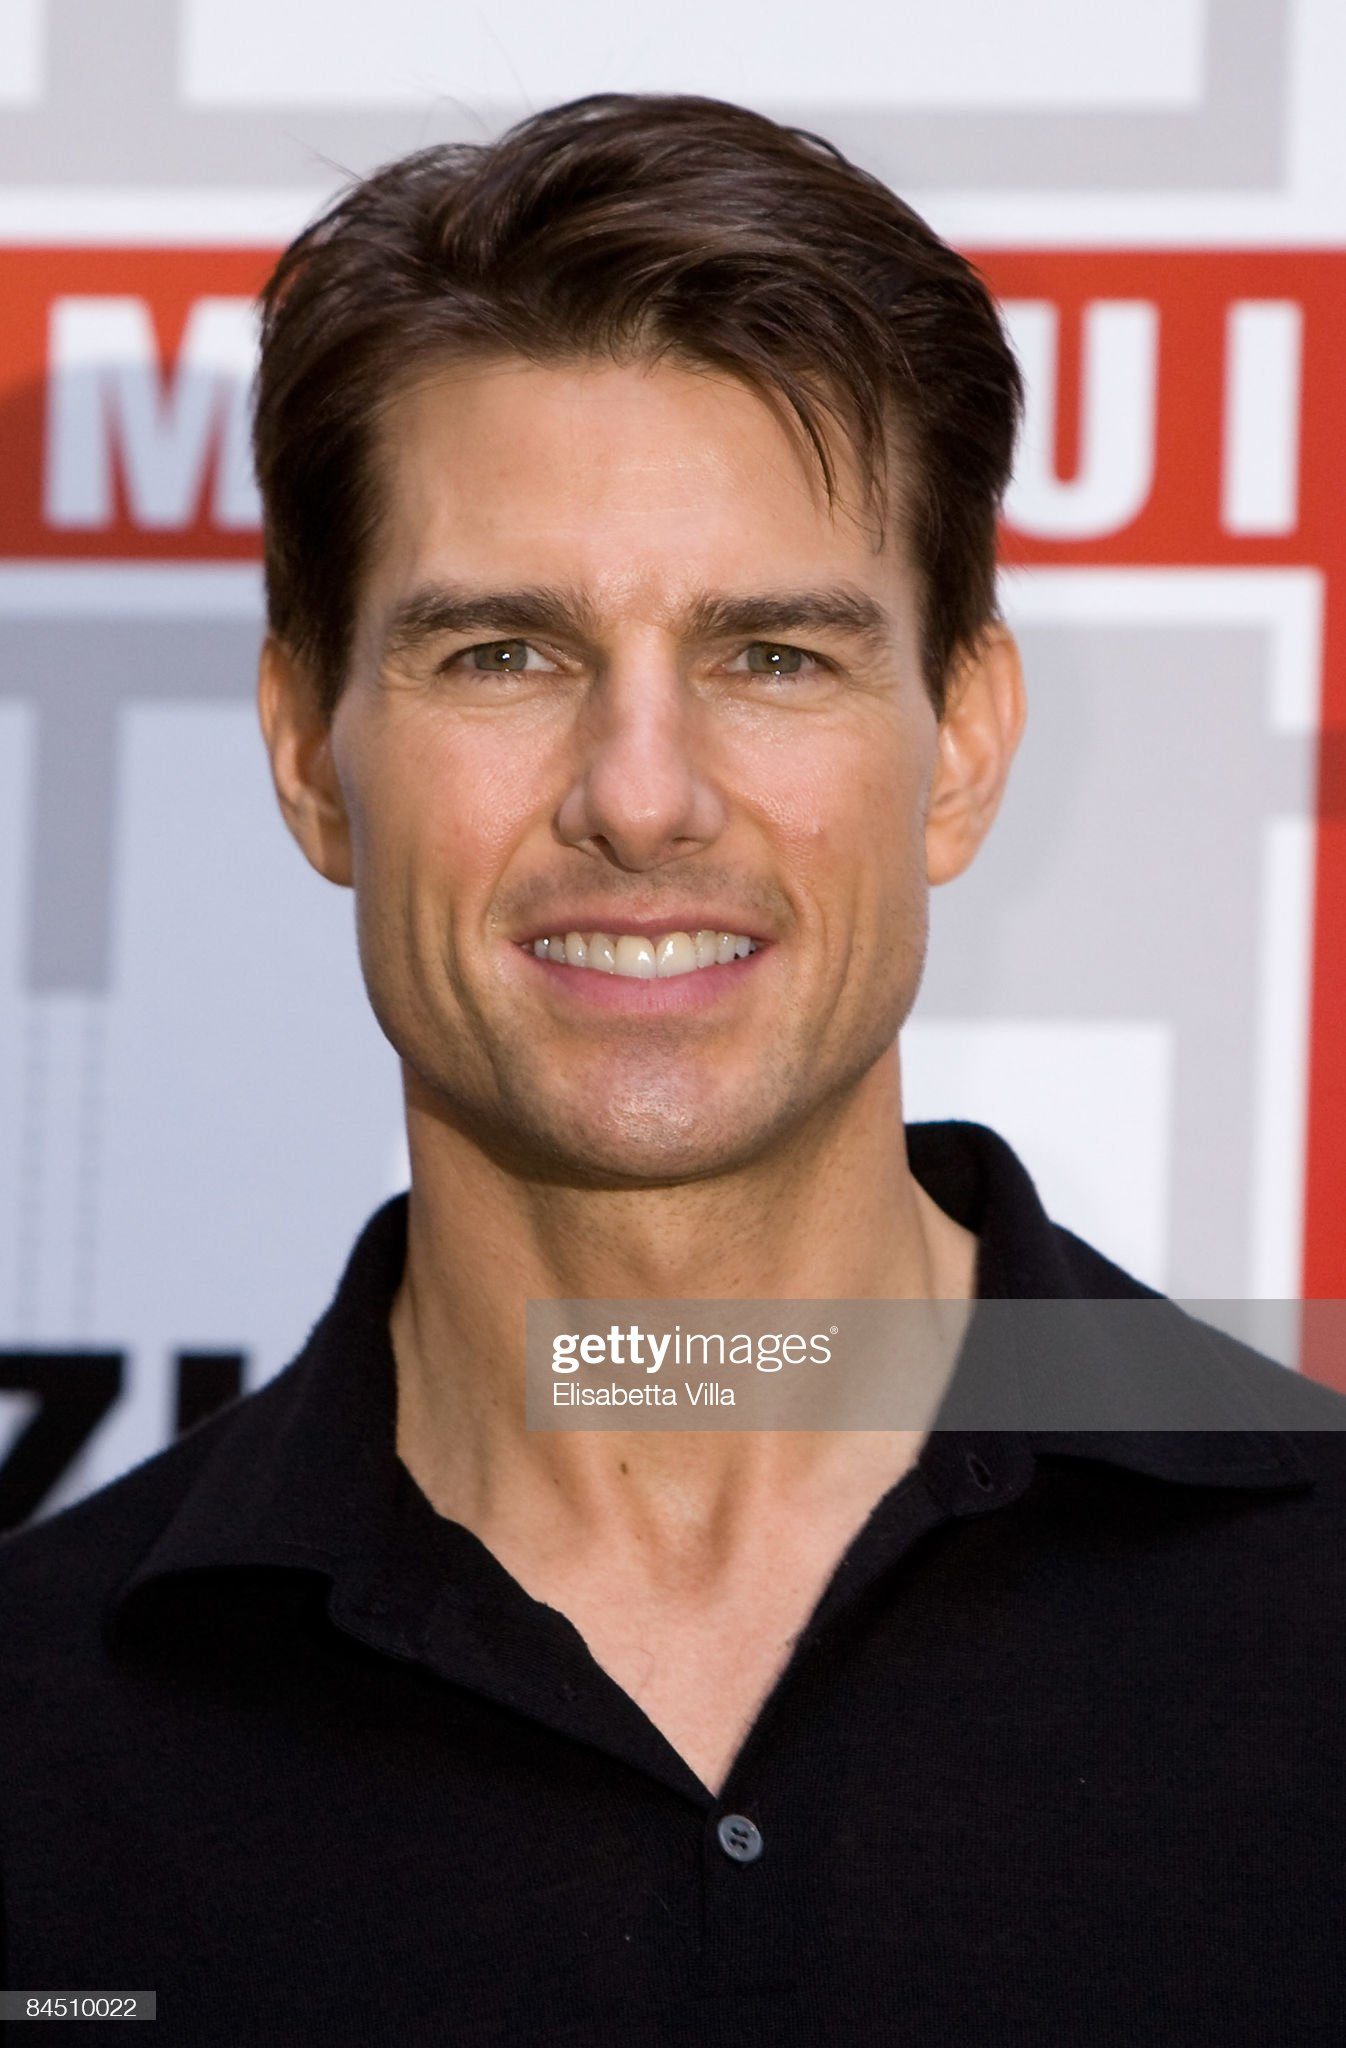 Tom Cruise (Galería de fotos) Actor-tom-cruise-attends-valkyrie-photocall-at-hassler-hotel-on-28-picture-id84510022?s=2048x2048